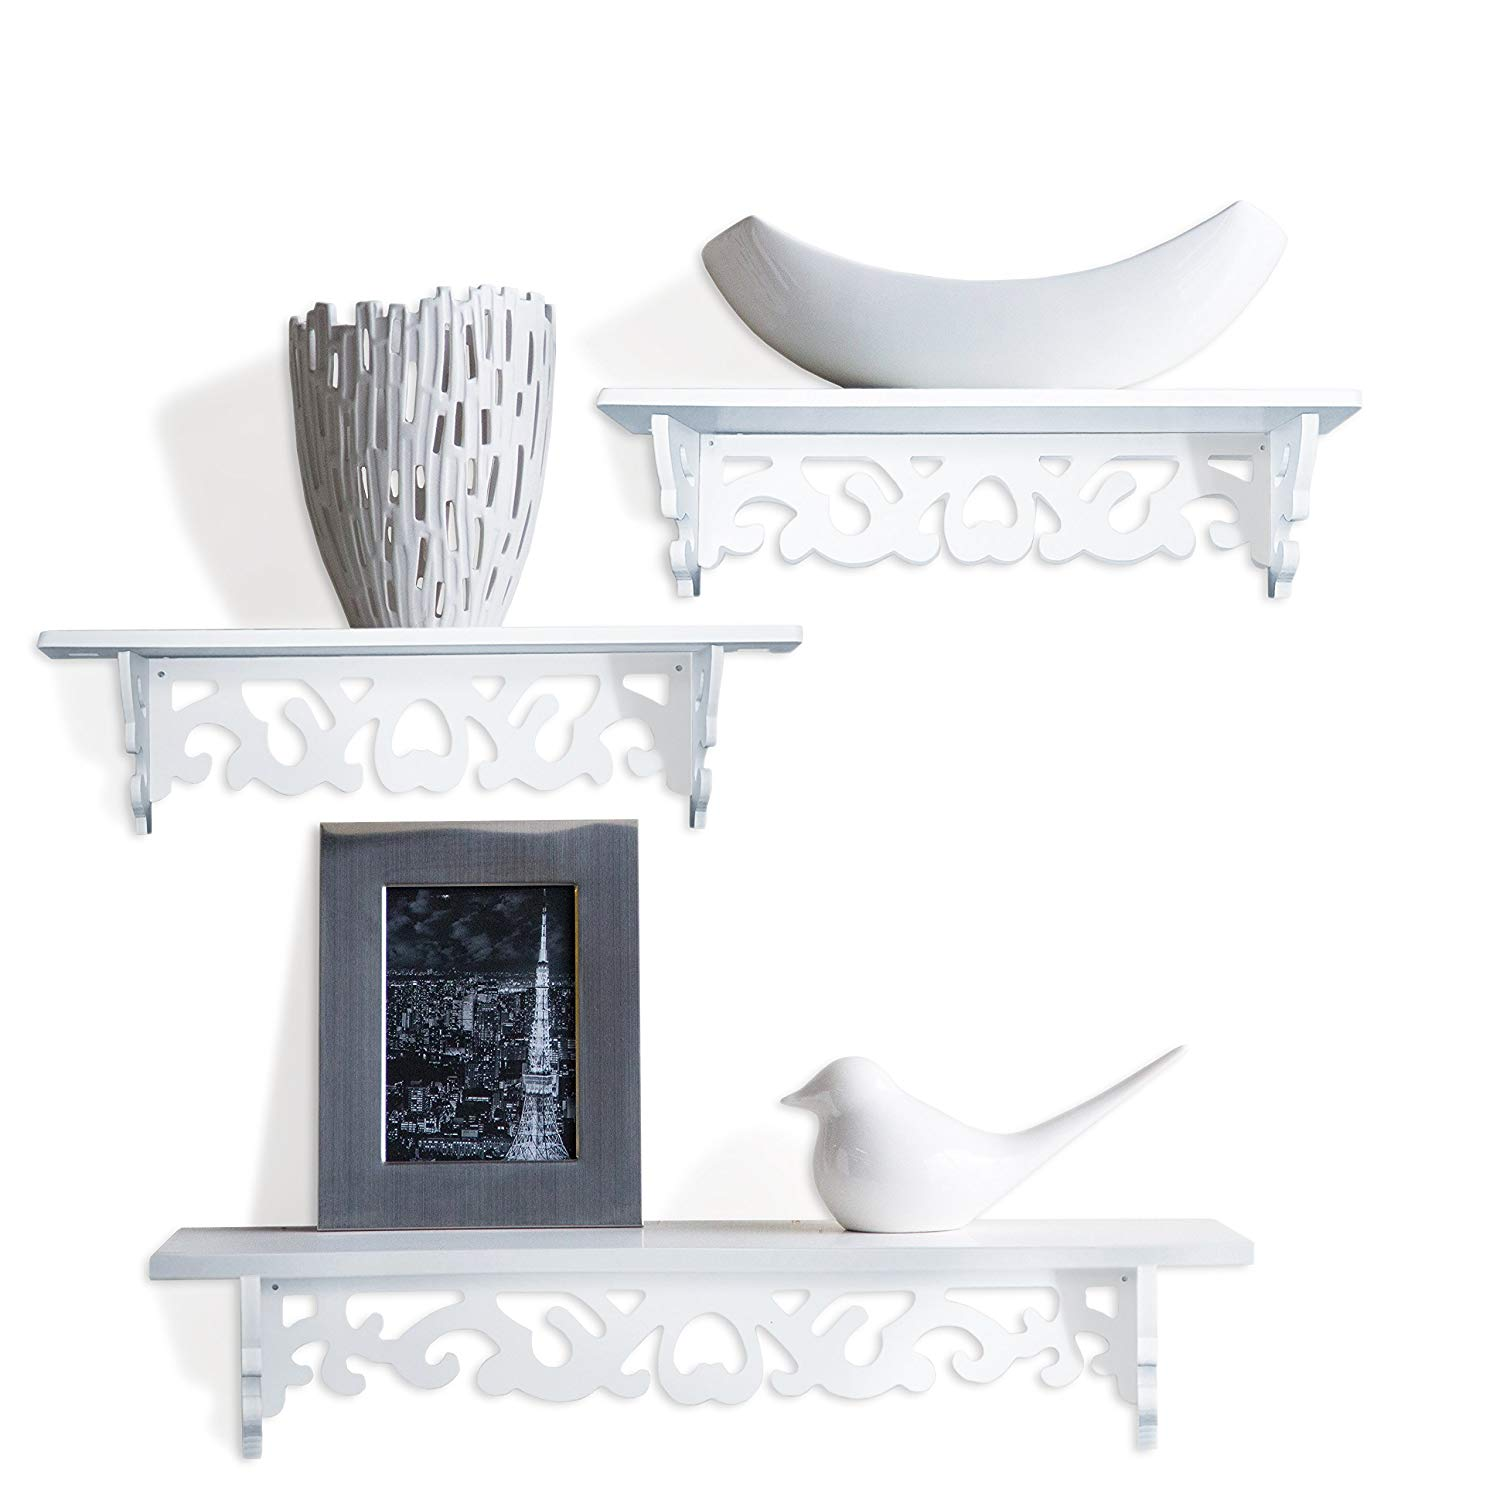 white book shelf floating wall shelves display set inch great for books collections utility design and taste your room easy high television stands whole bookshelf elastilon